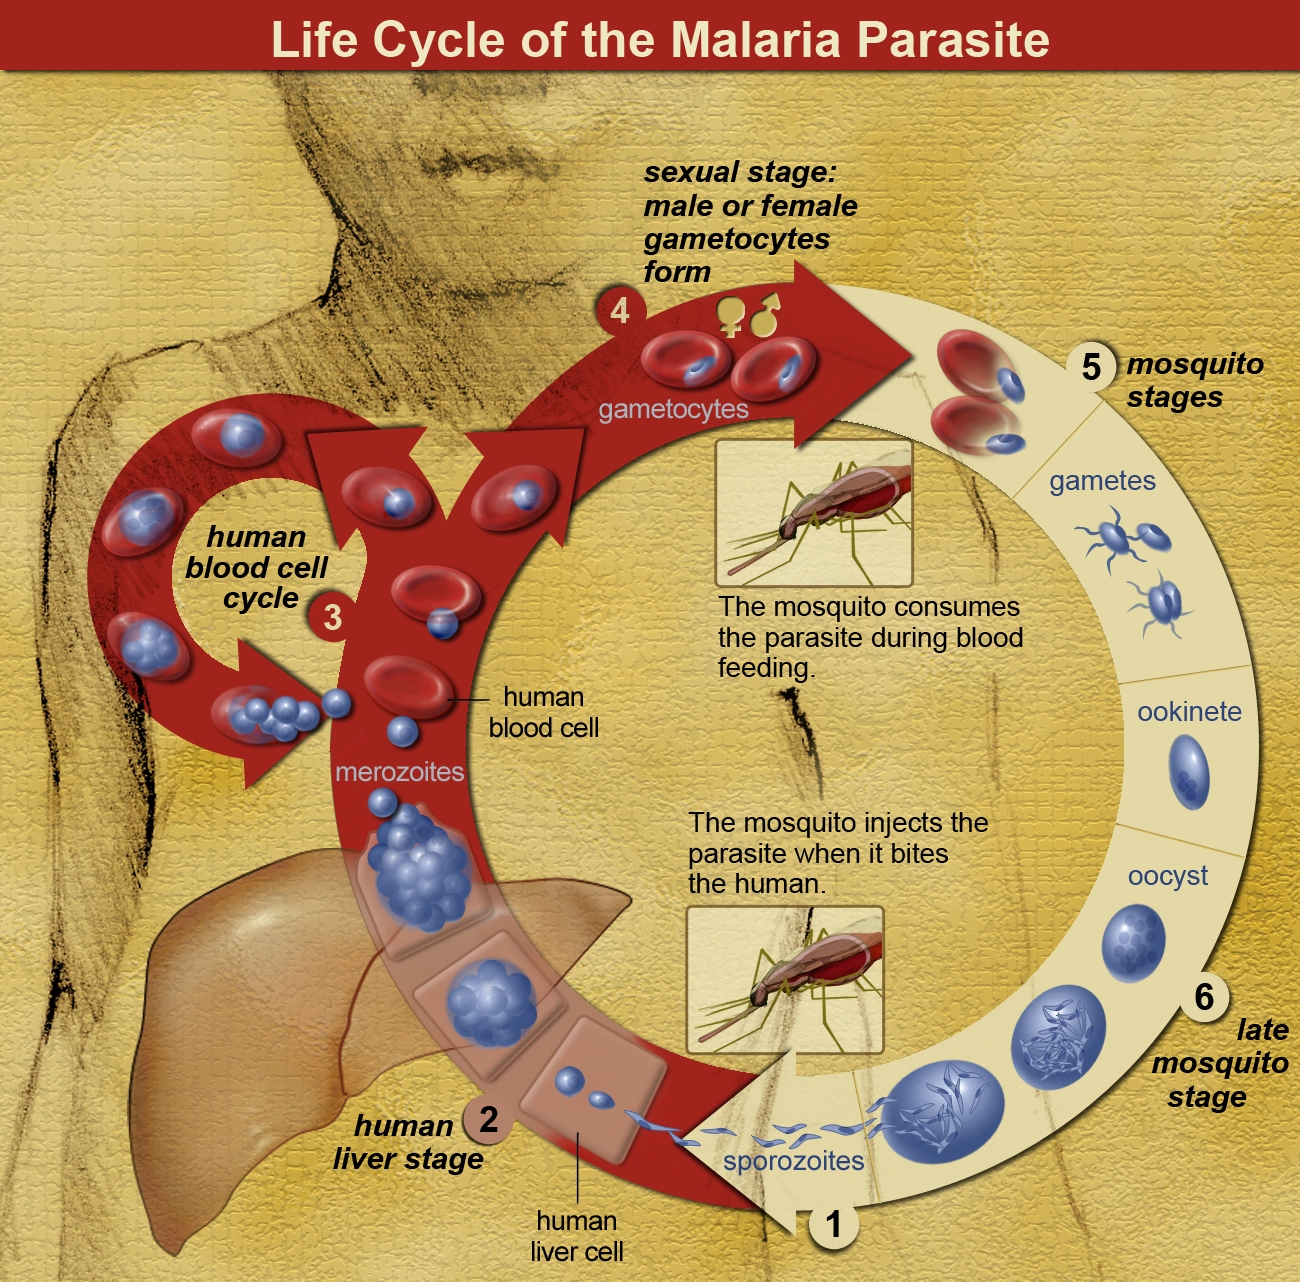 Malaria, Life Cycle of the Malaria Parasite